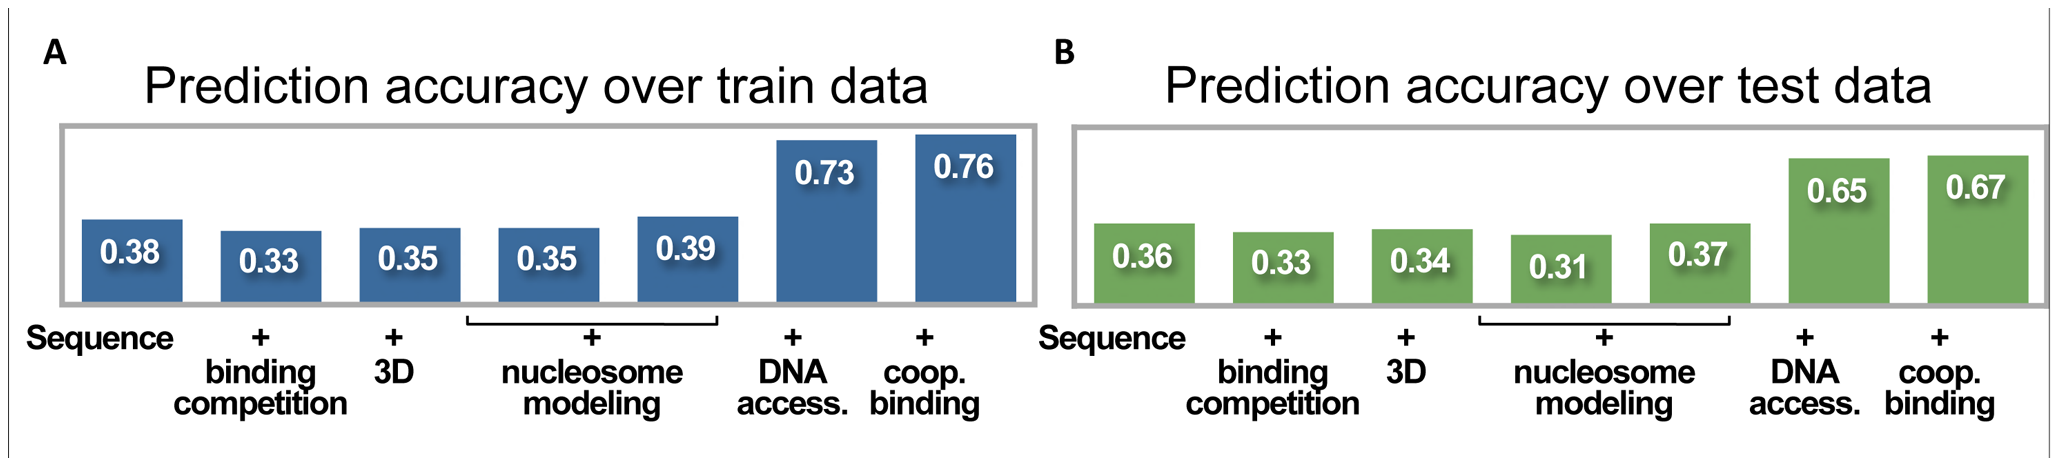 Prediction accuracy at increasing degrees of model complexity.